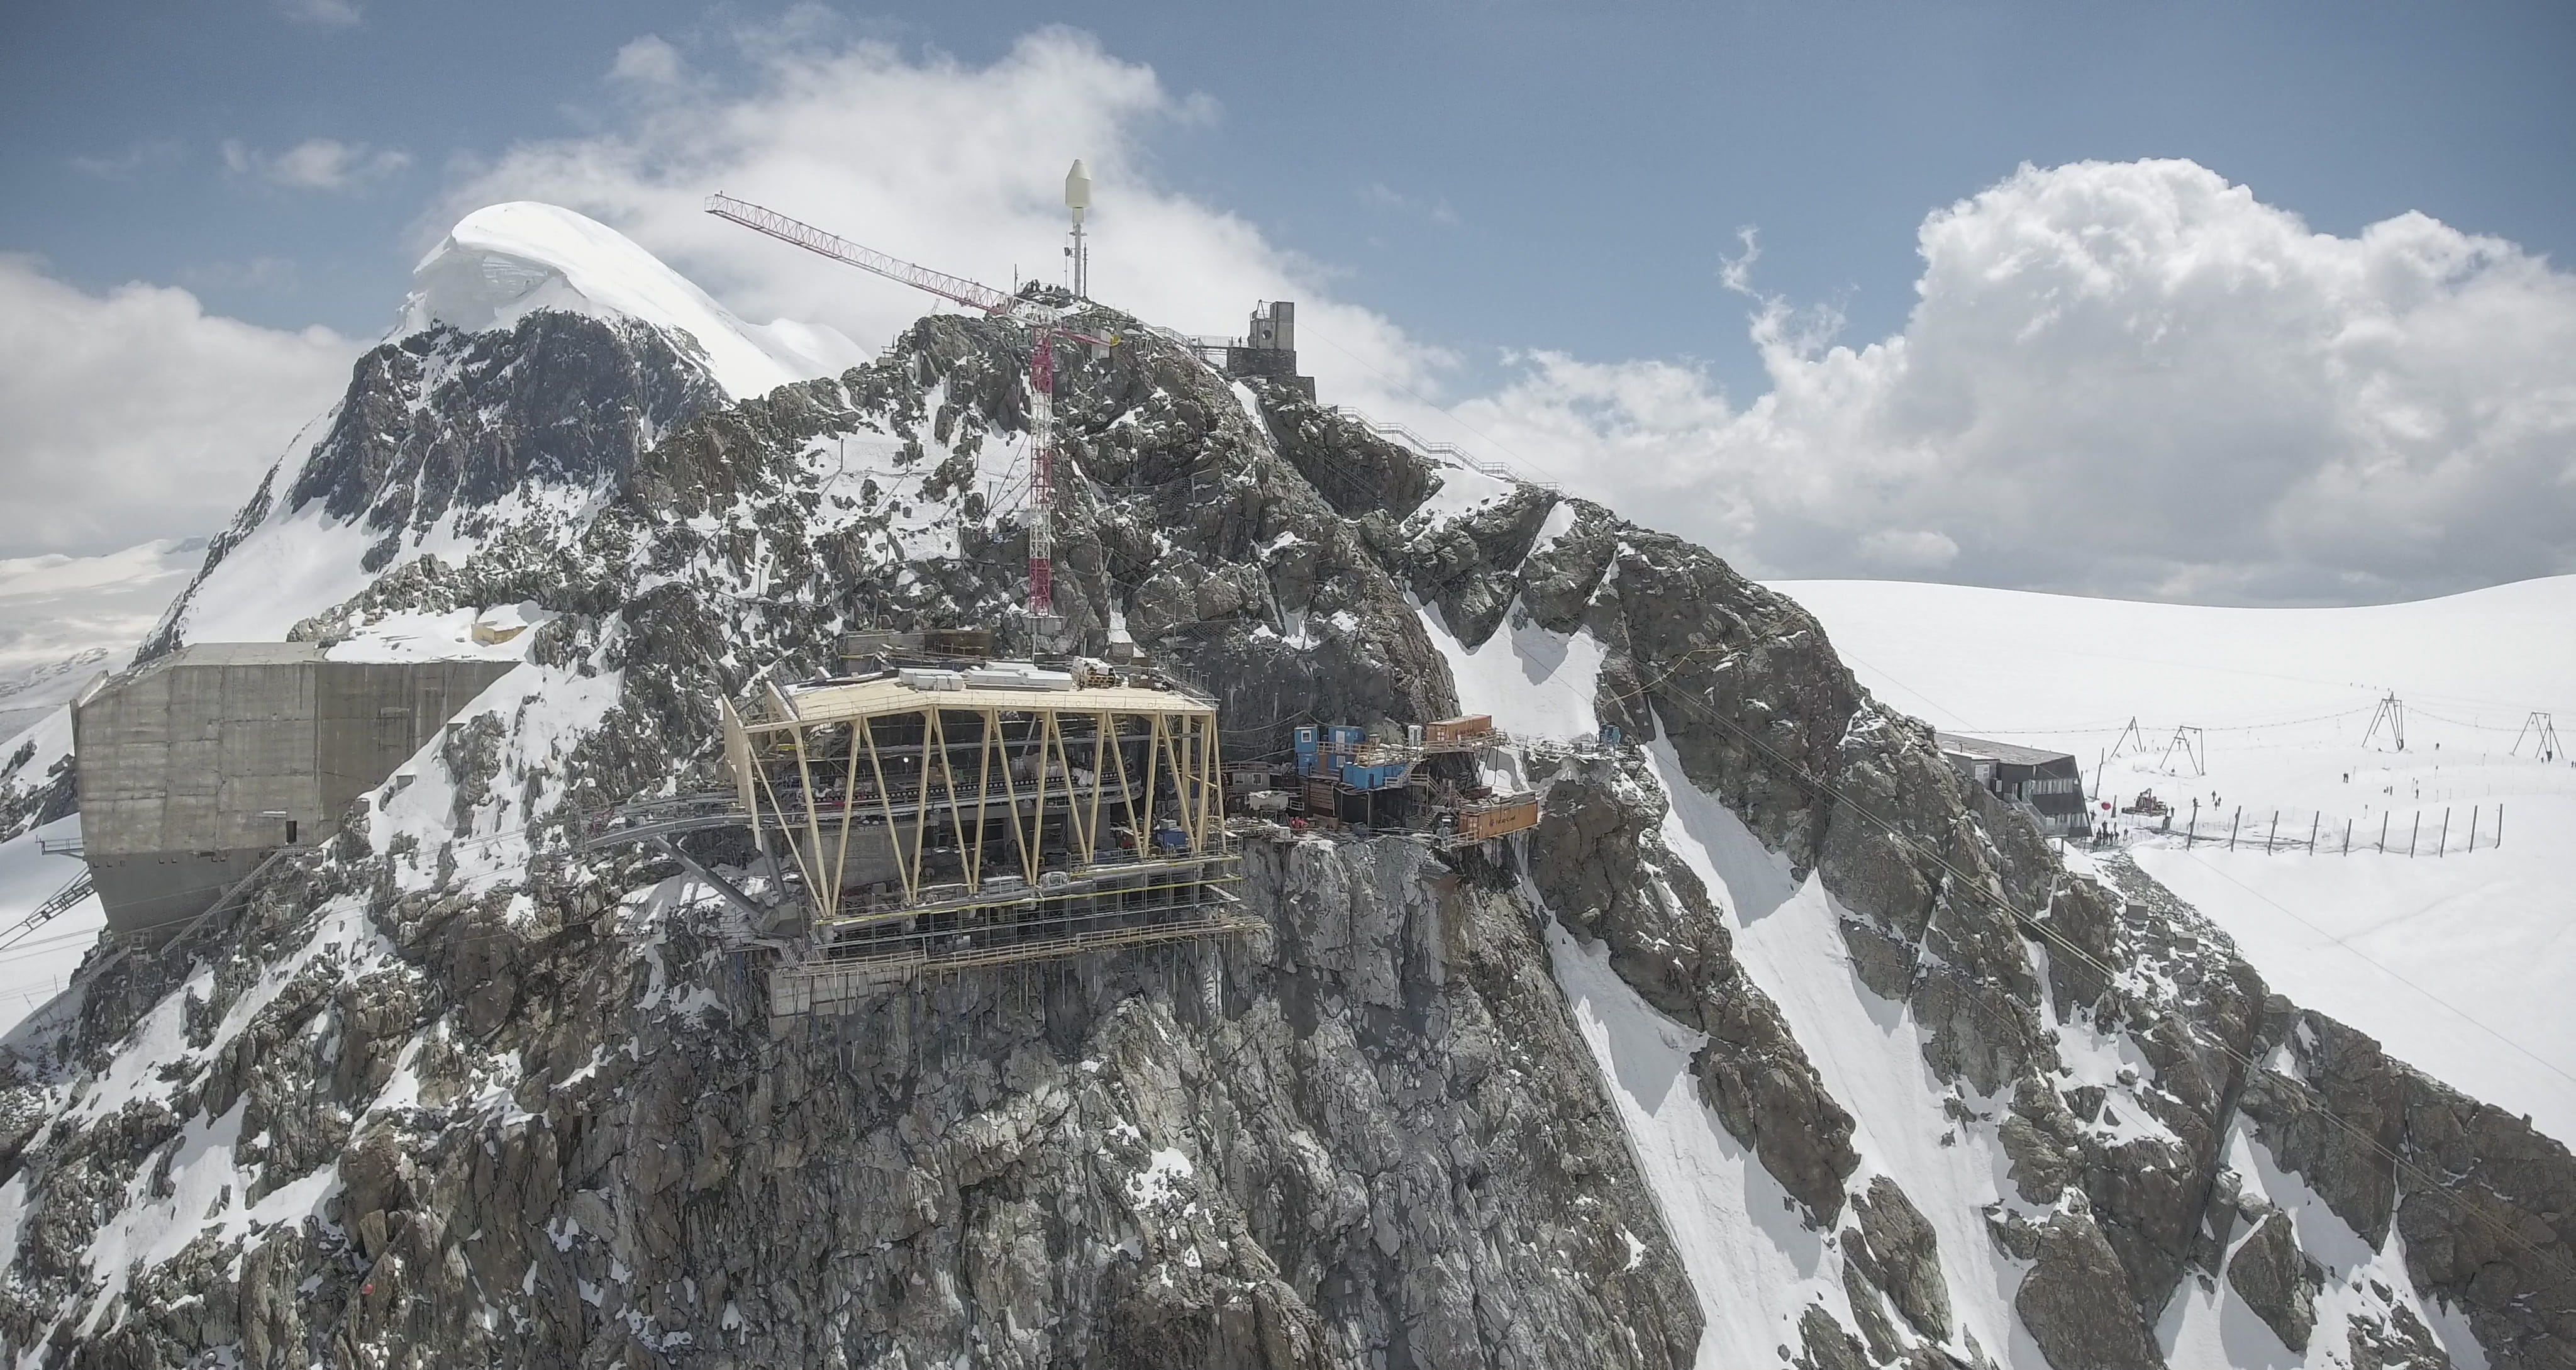 3S Cableway Klein Matterhorn Mountain Station During Assembly with Existing Mountain Station on the Left (© Aircam Zermatt)